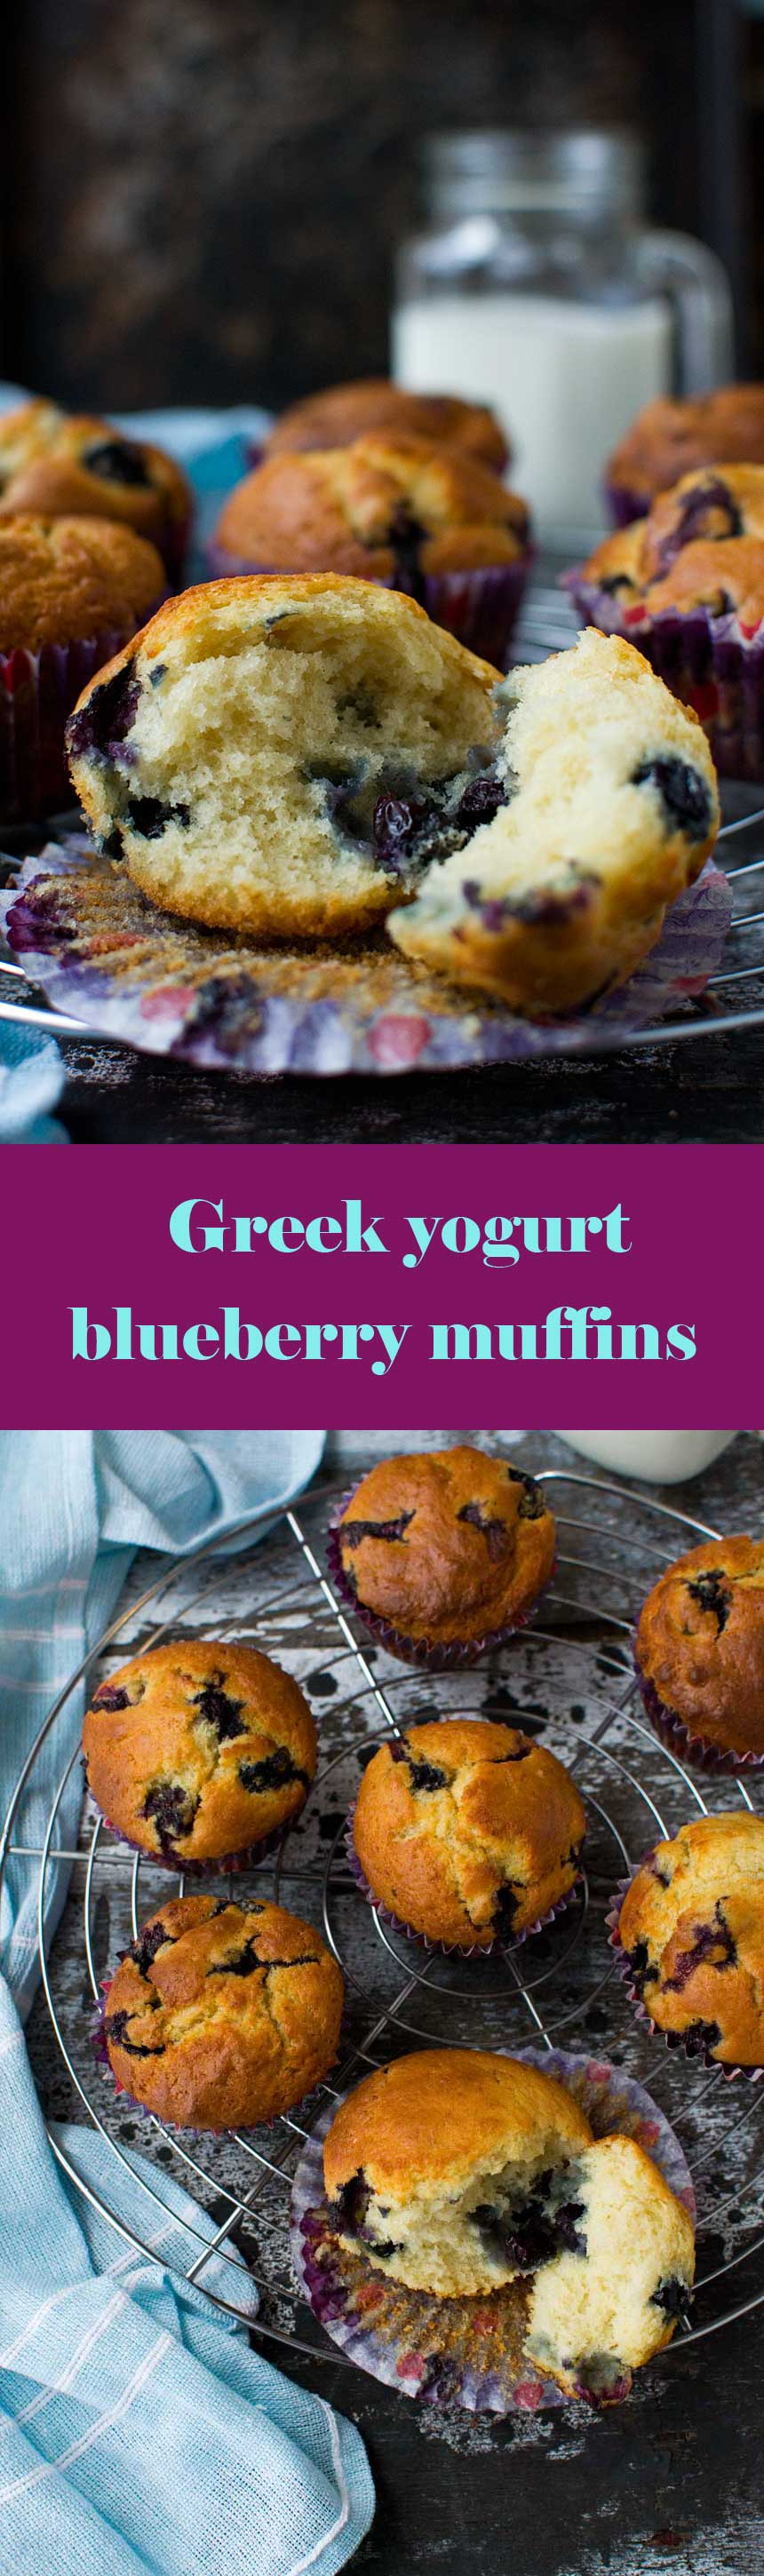 Foolproof Greek yogurt blueberry muffins - a light, airy and delicious recipe that also happens to be fairly low in sugar.  #blueberrymuffins #muffins #cake #easydessert #dessert #scrummylane #blueberries #lowsugar #healthymuffins